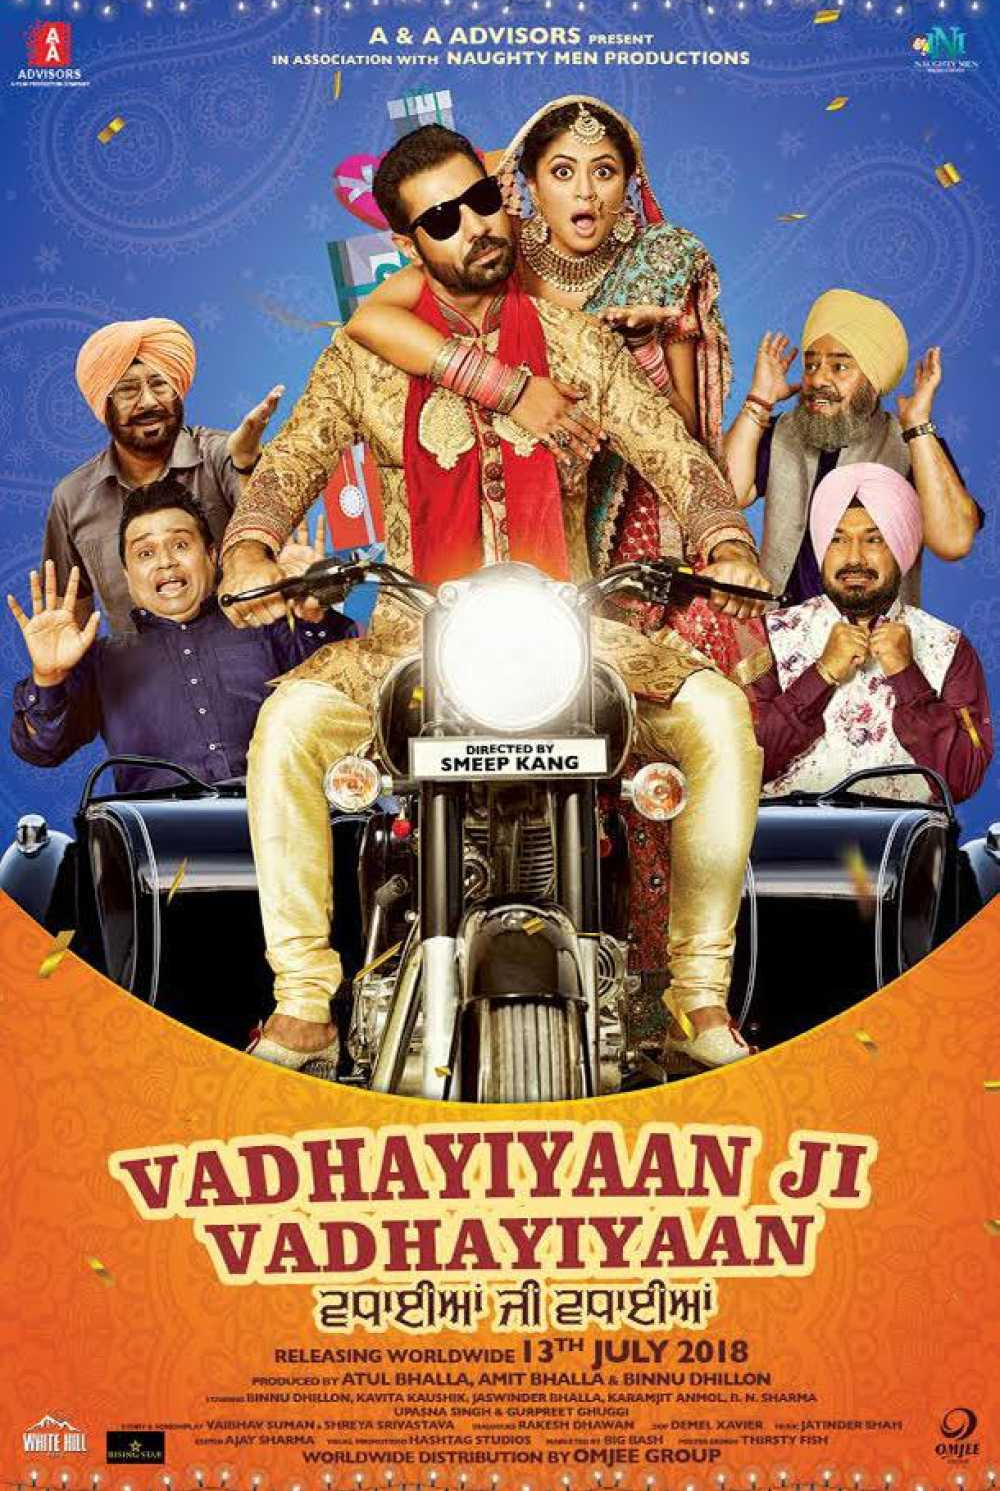 Vadhayiyaan Ji Vadhayiyaan 2018 New Punjabi Movie Download And Watch Online